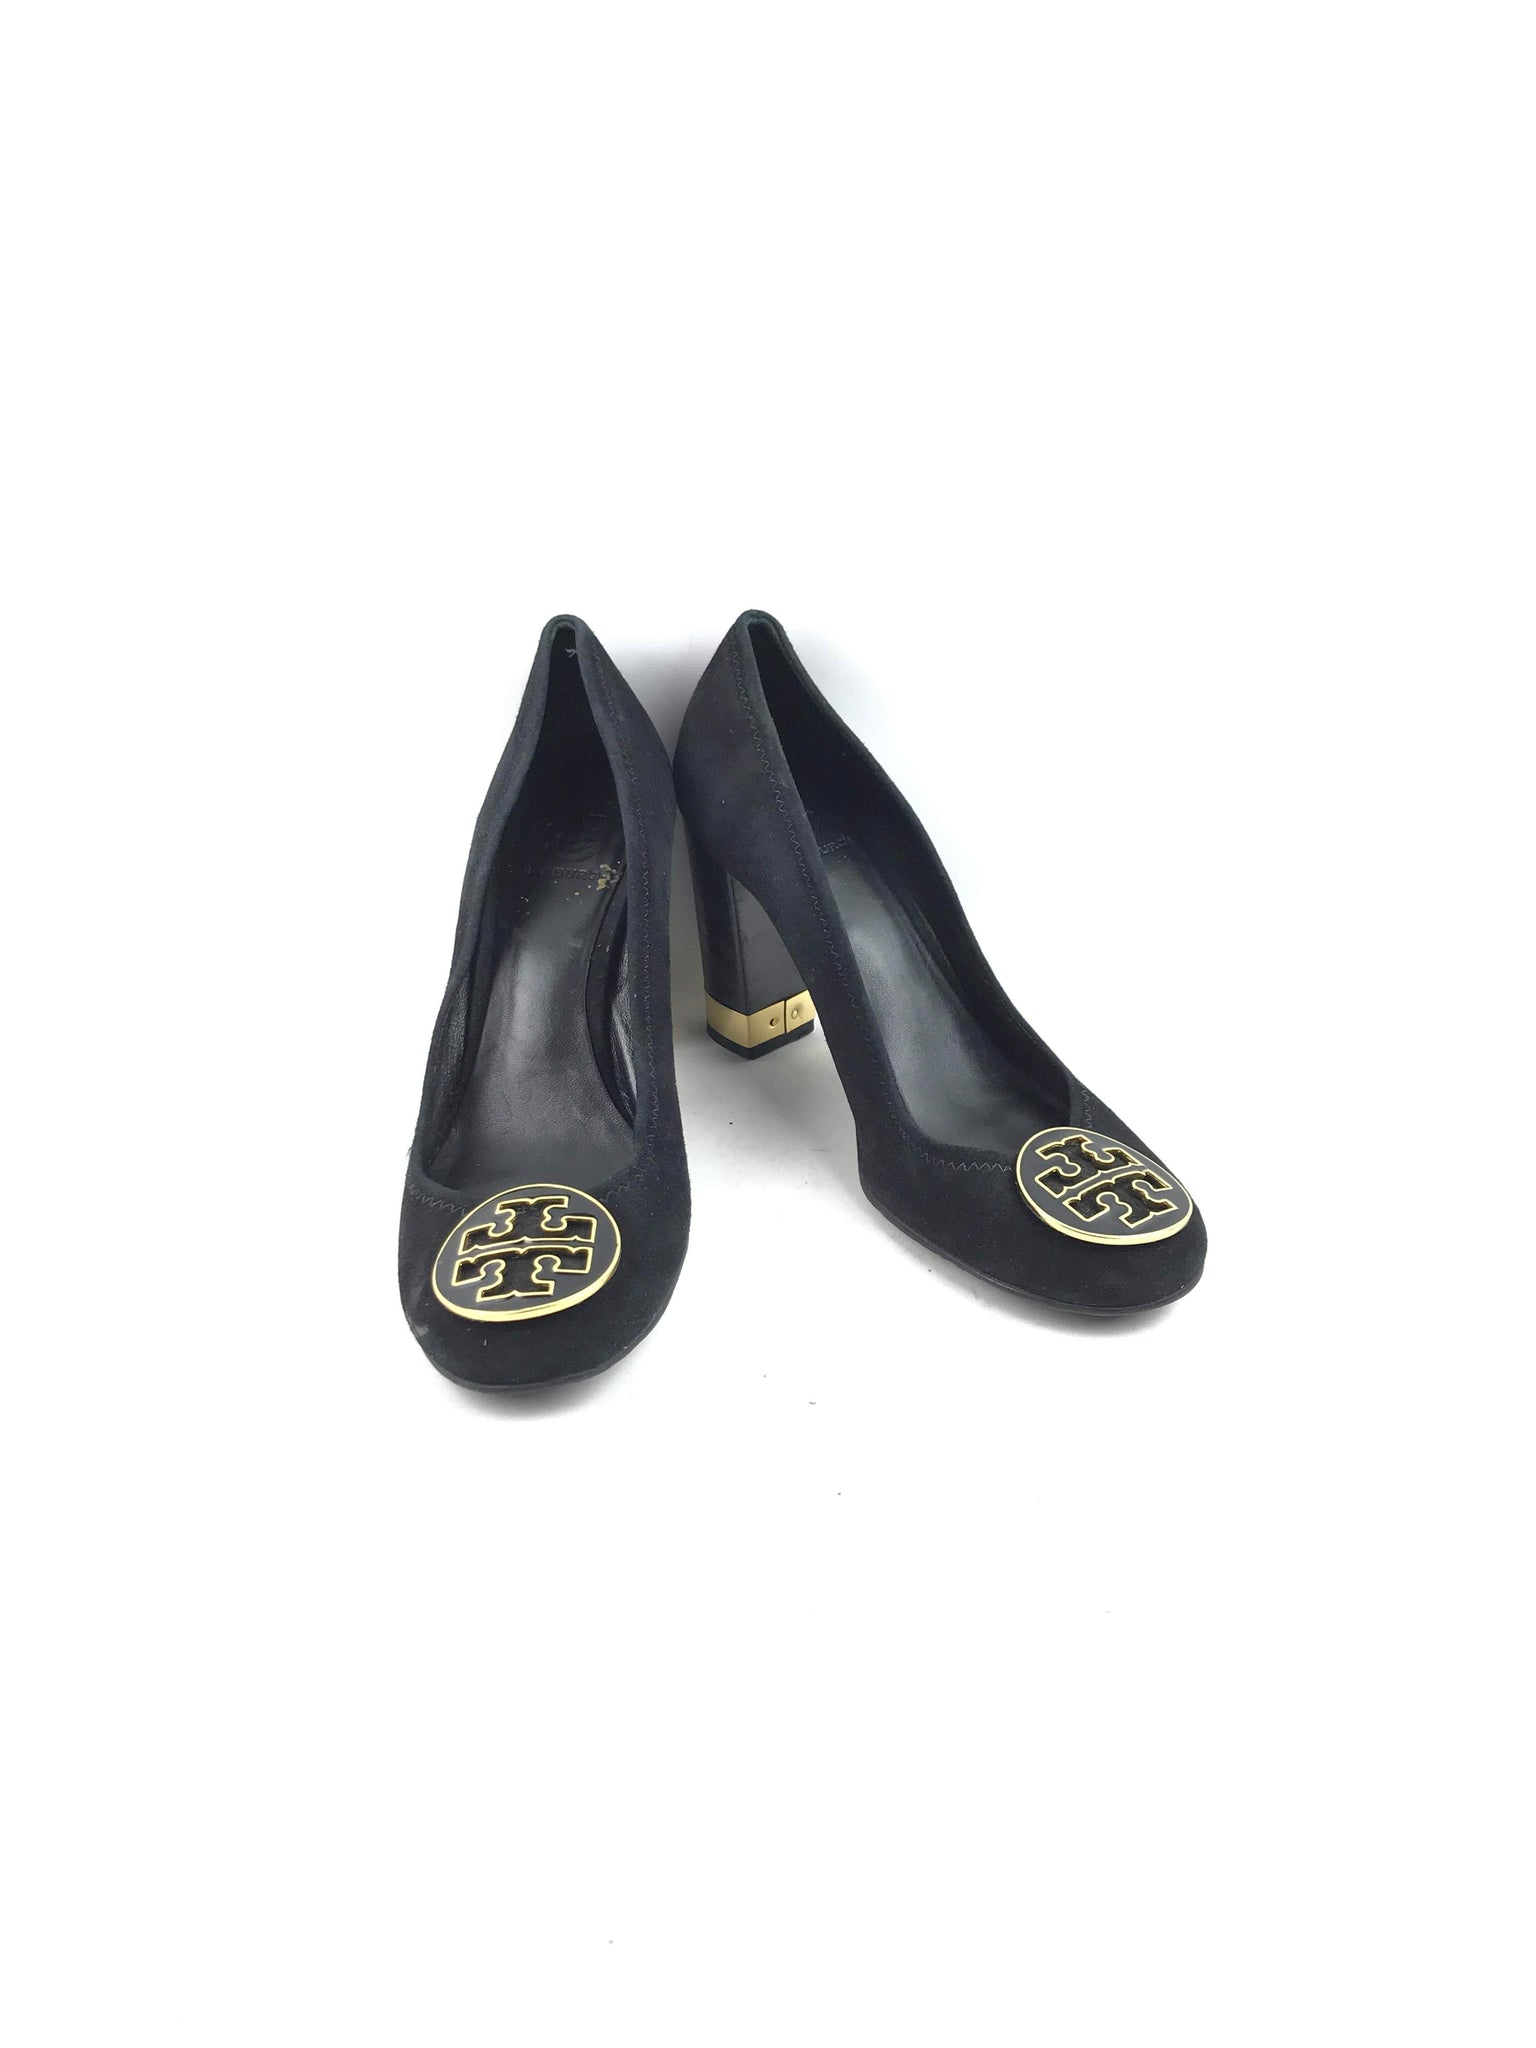 TORY BURCH Black Suede Leather Maddie Pump Block Heel